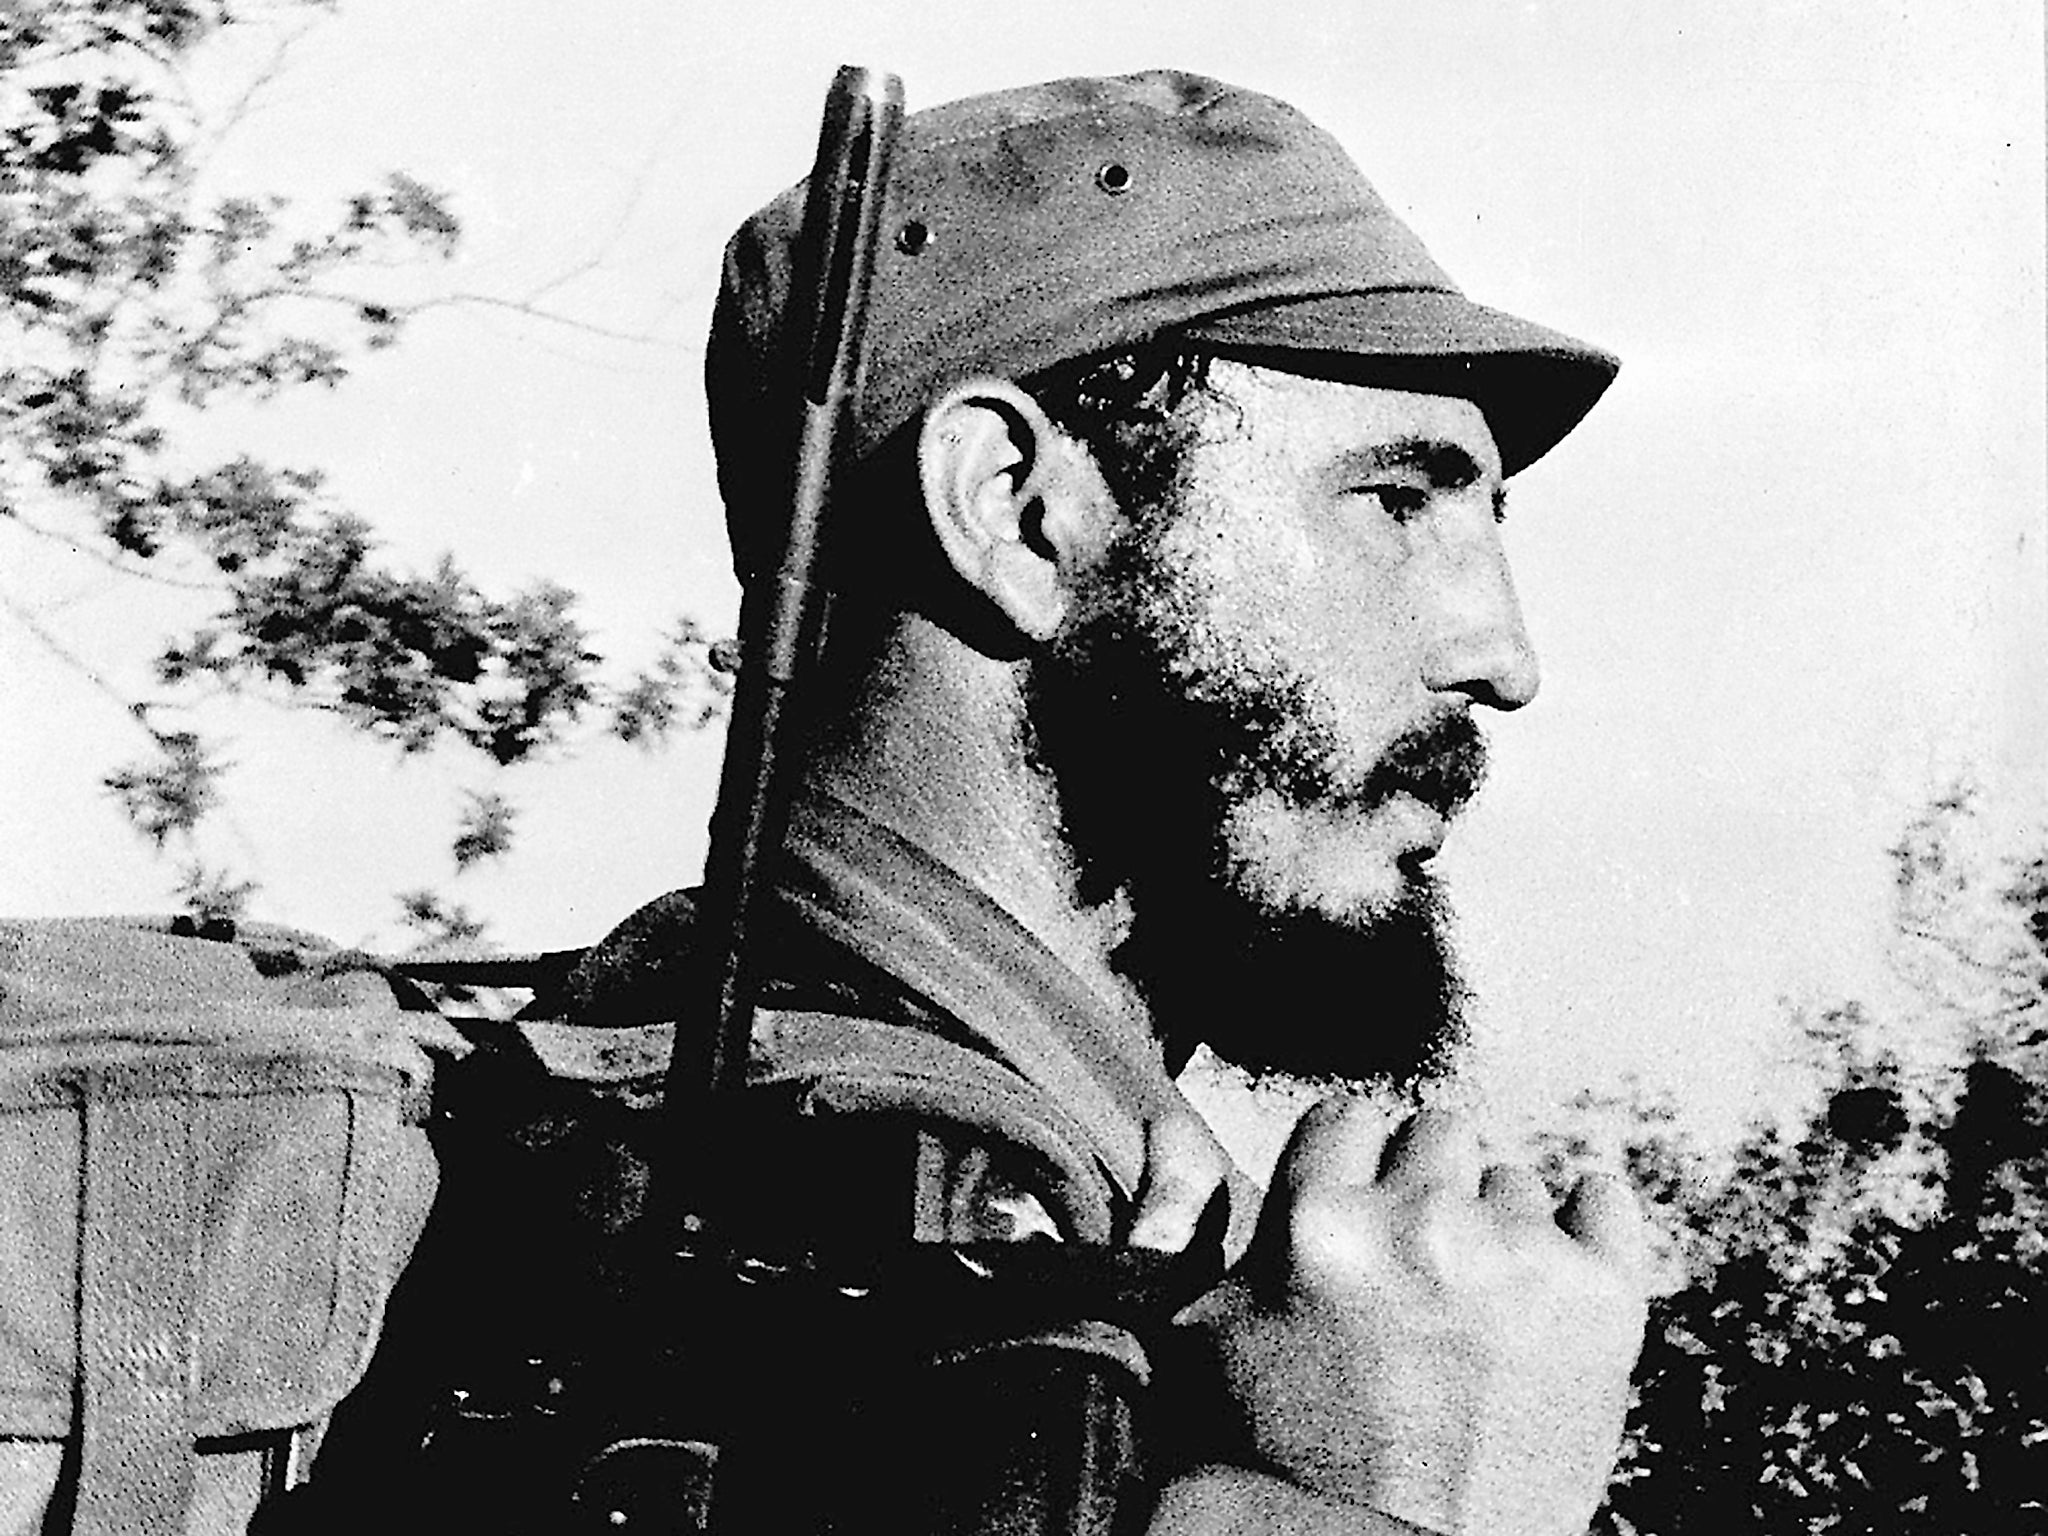 fidel castros revolution essay Fidel castro and the cuban revolution  this essay will seek to briefly tell the story of fidel  national holiday and the occasion of a major speech by fidel.